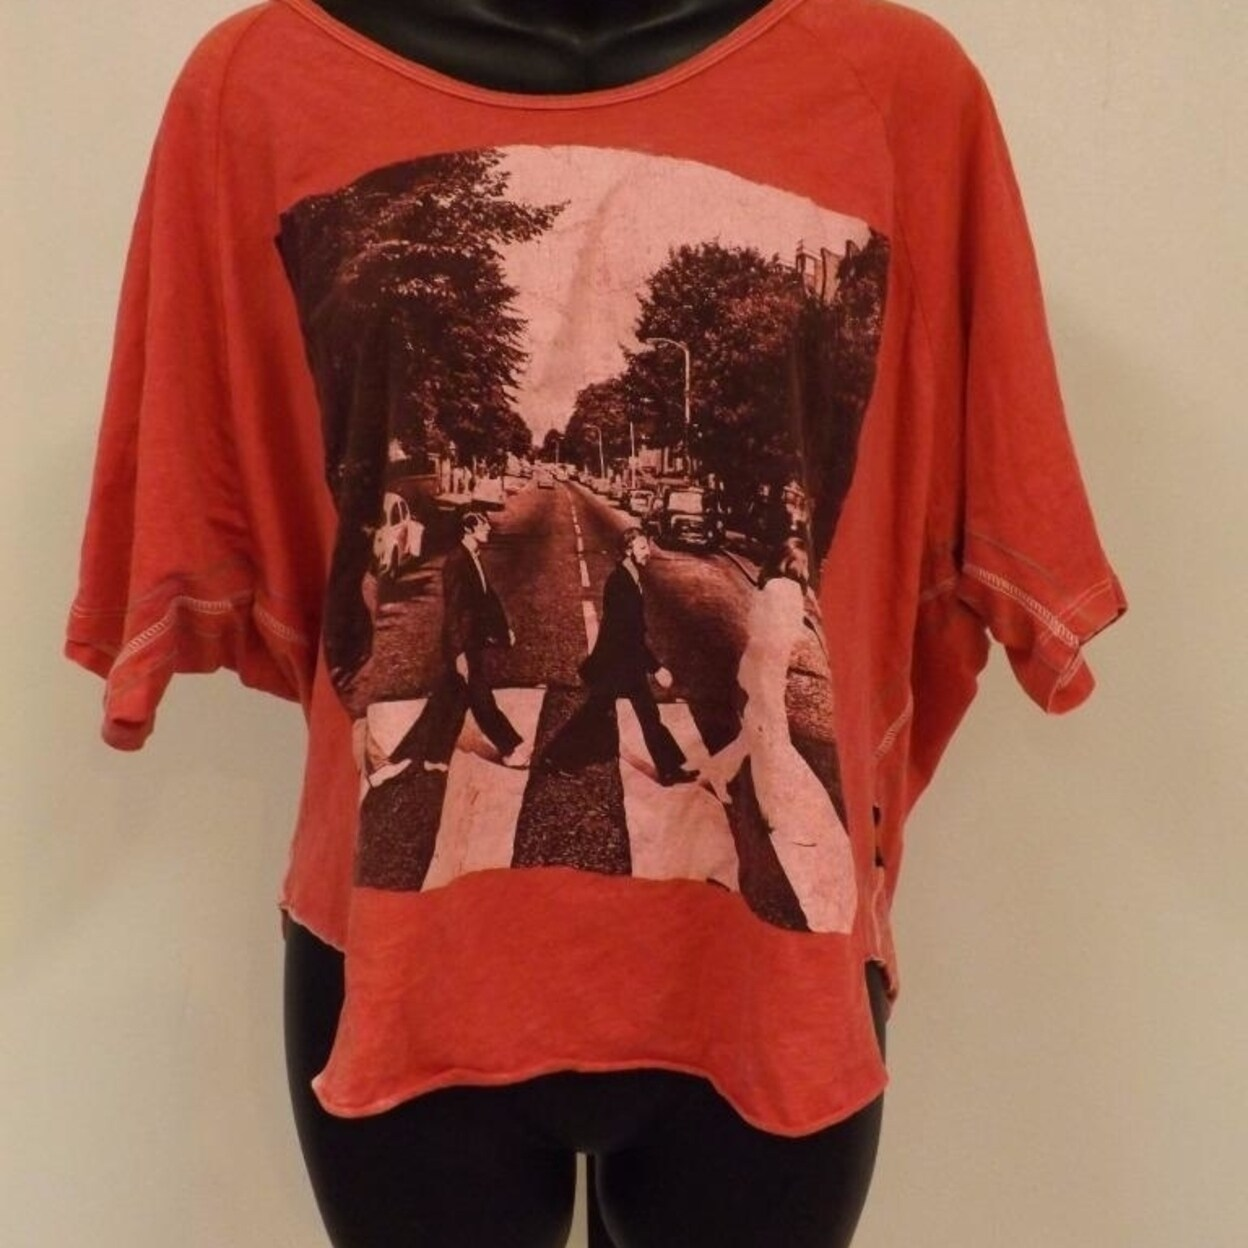 New The Beatles Womens Sizes S-M-L Loose Crop Top Shirt by Trunk